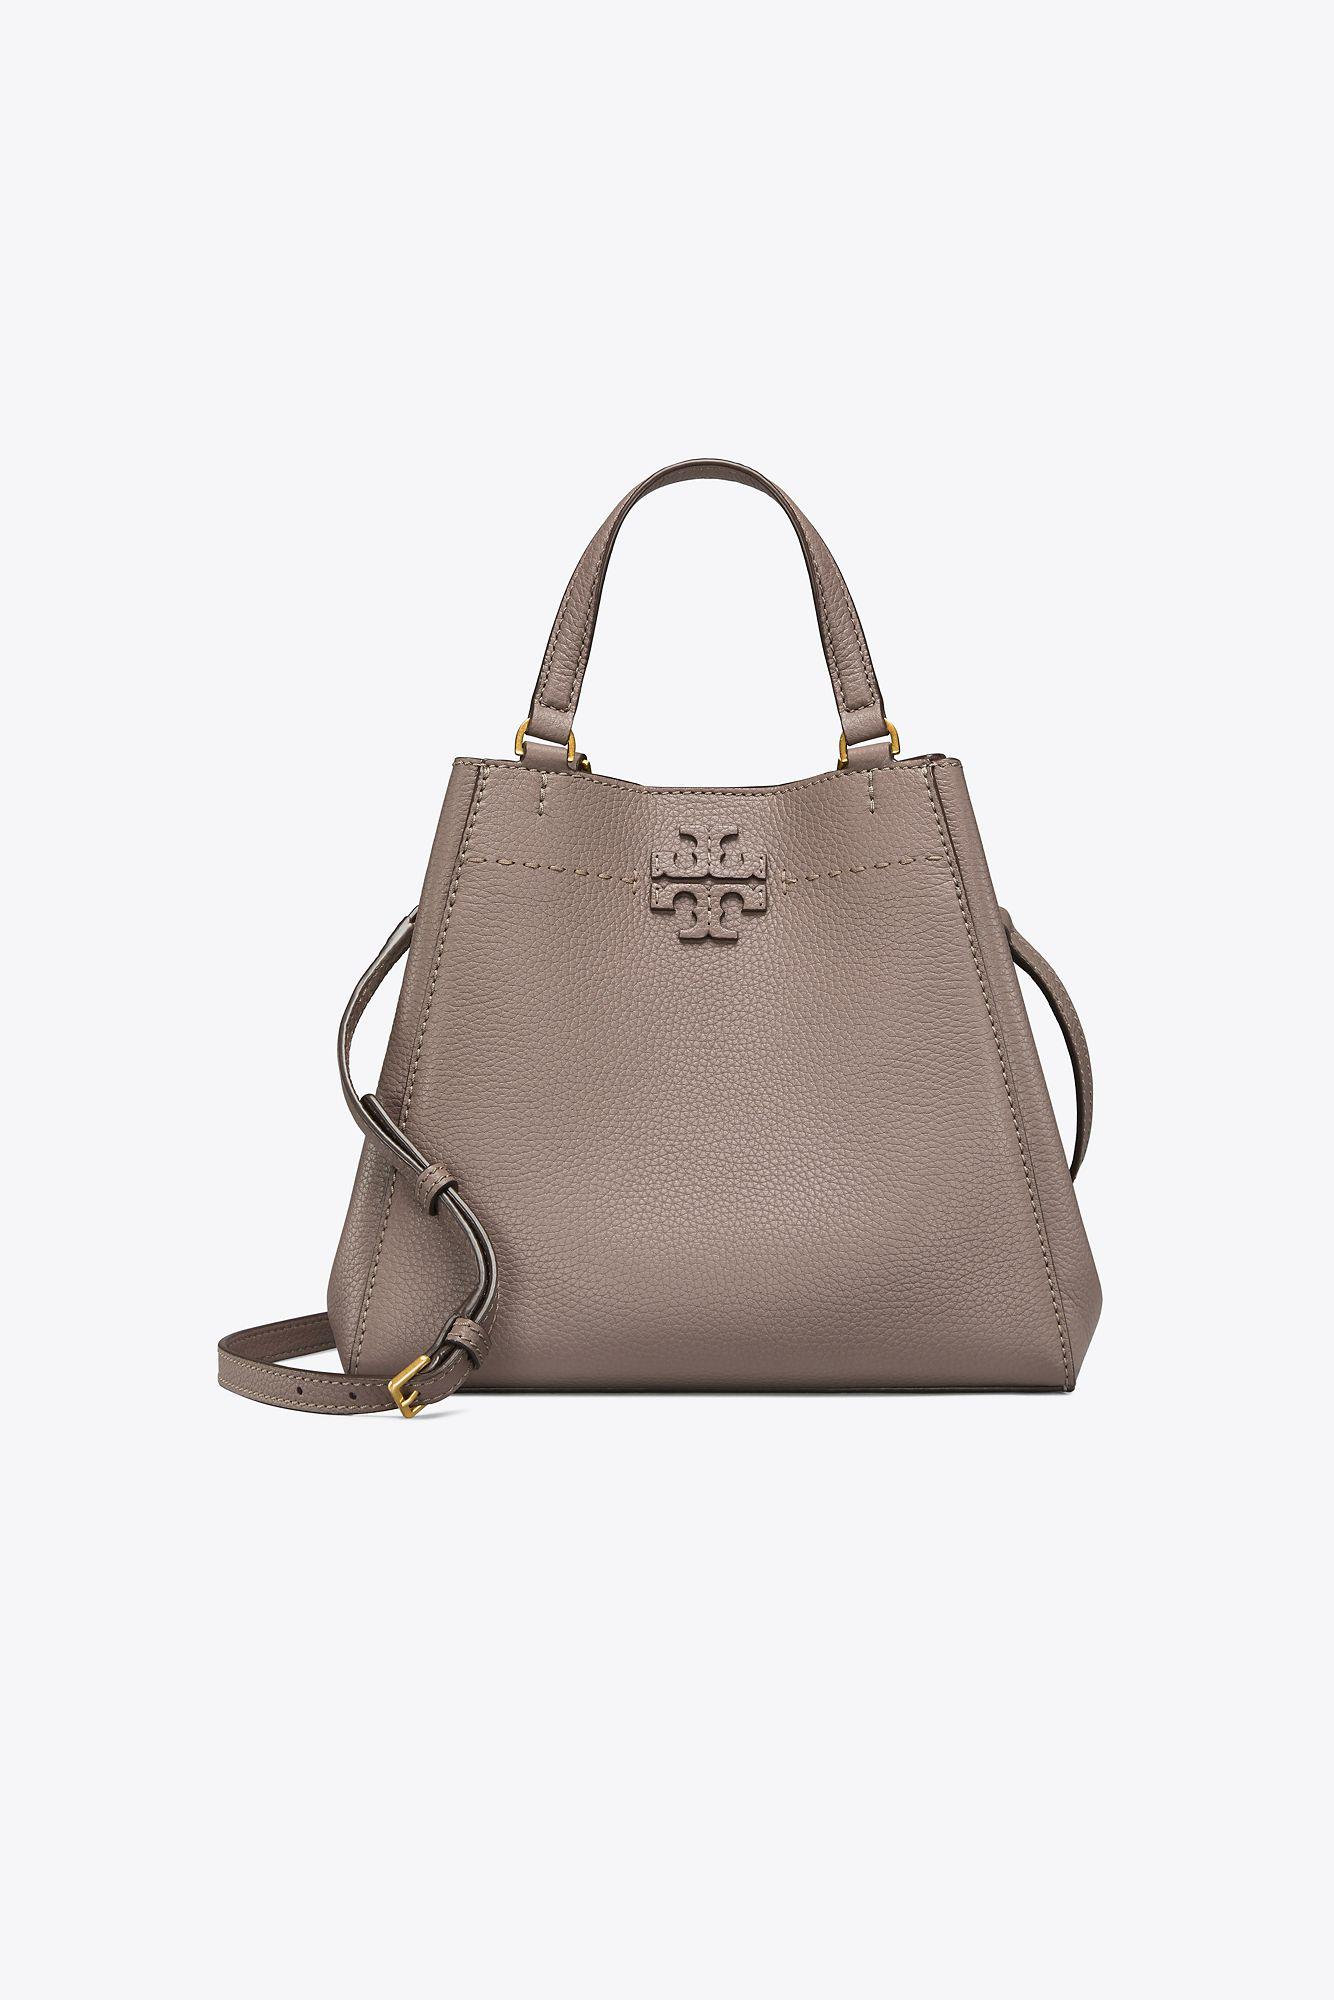 e86a99dc3ae1 Tory Burch. Women s Mcgraw Small Carryall